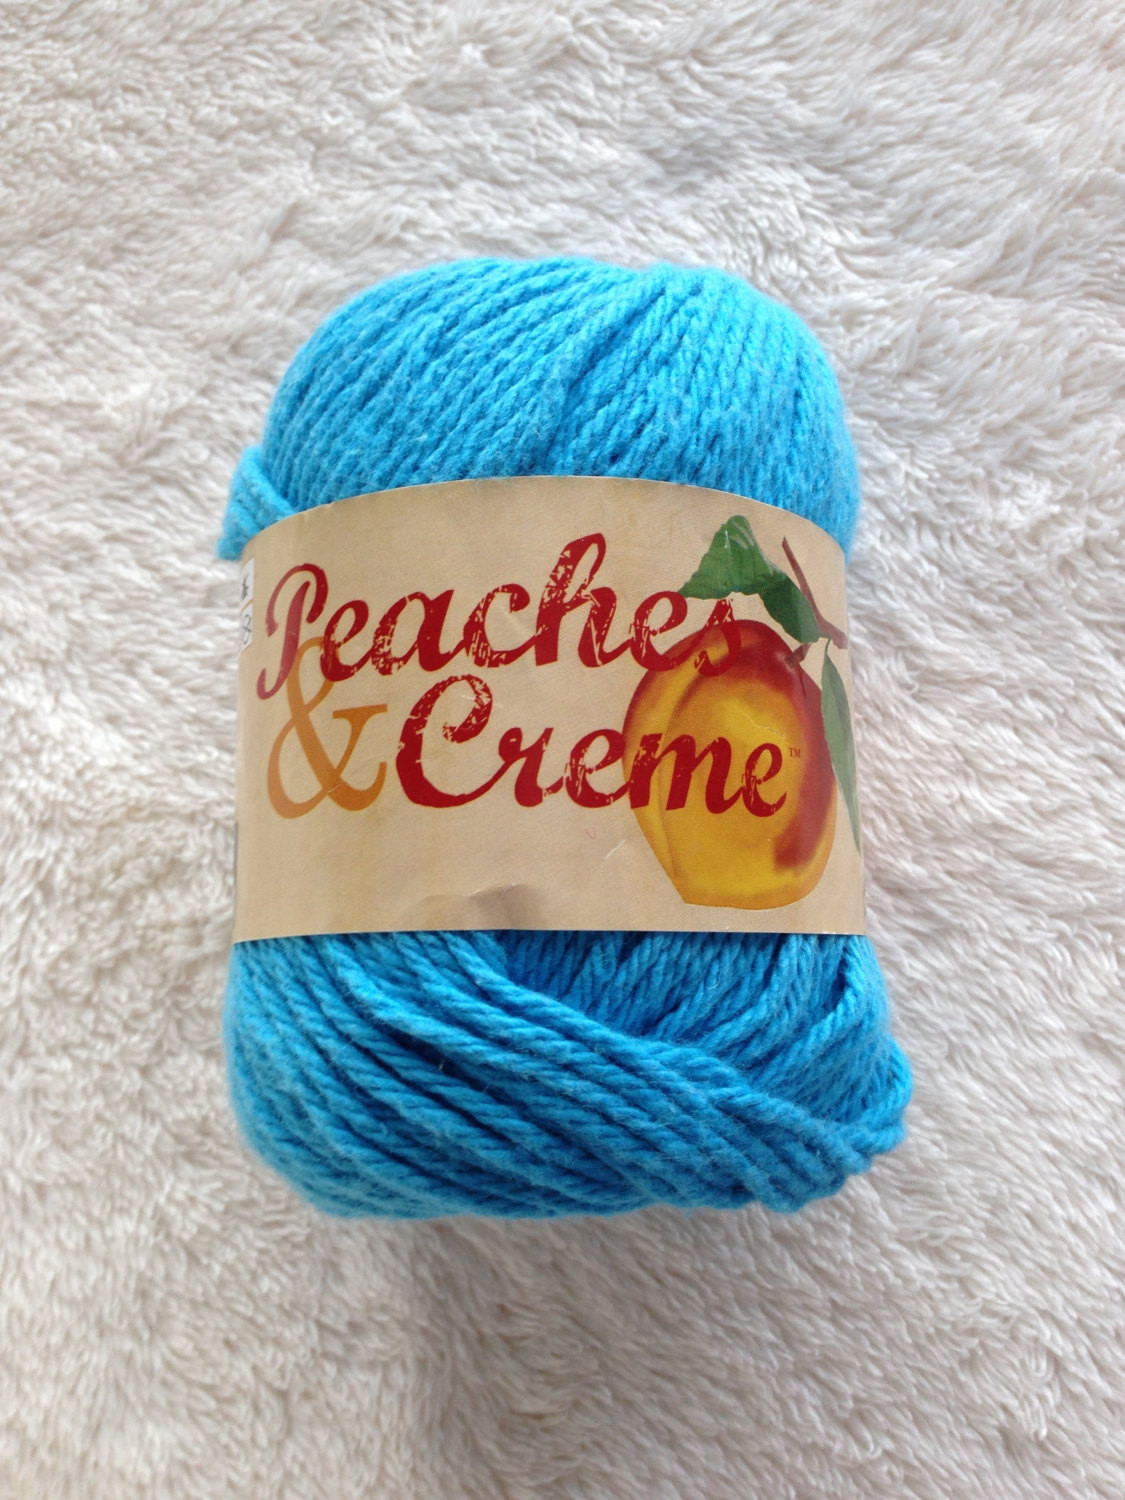 Peaches and Creme Yarn Crochet Patterns Unique Cotton Yarn Peaches and Creme by Suziestalentsupplies Of Amazing 42 Ideas Peaches and Creme Yarn Crochet Patterns